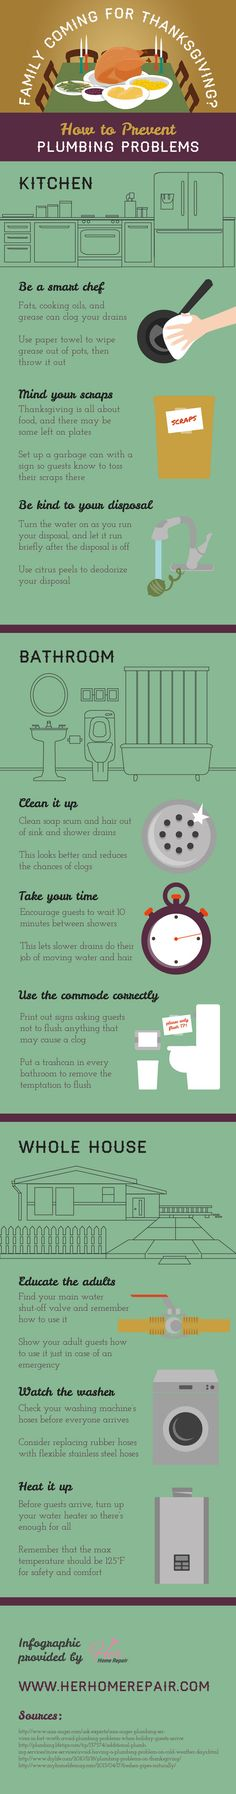 Putting a trashcan in every bathroom will encourage holiday guests to throw away their trash instead of flushing it and potentially causing a clog. Find more tips for preparing your home for Thanksgiving by clicking over to this Vancouver plumbing infographic.